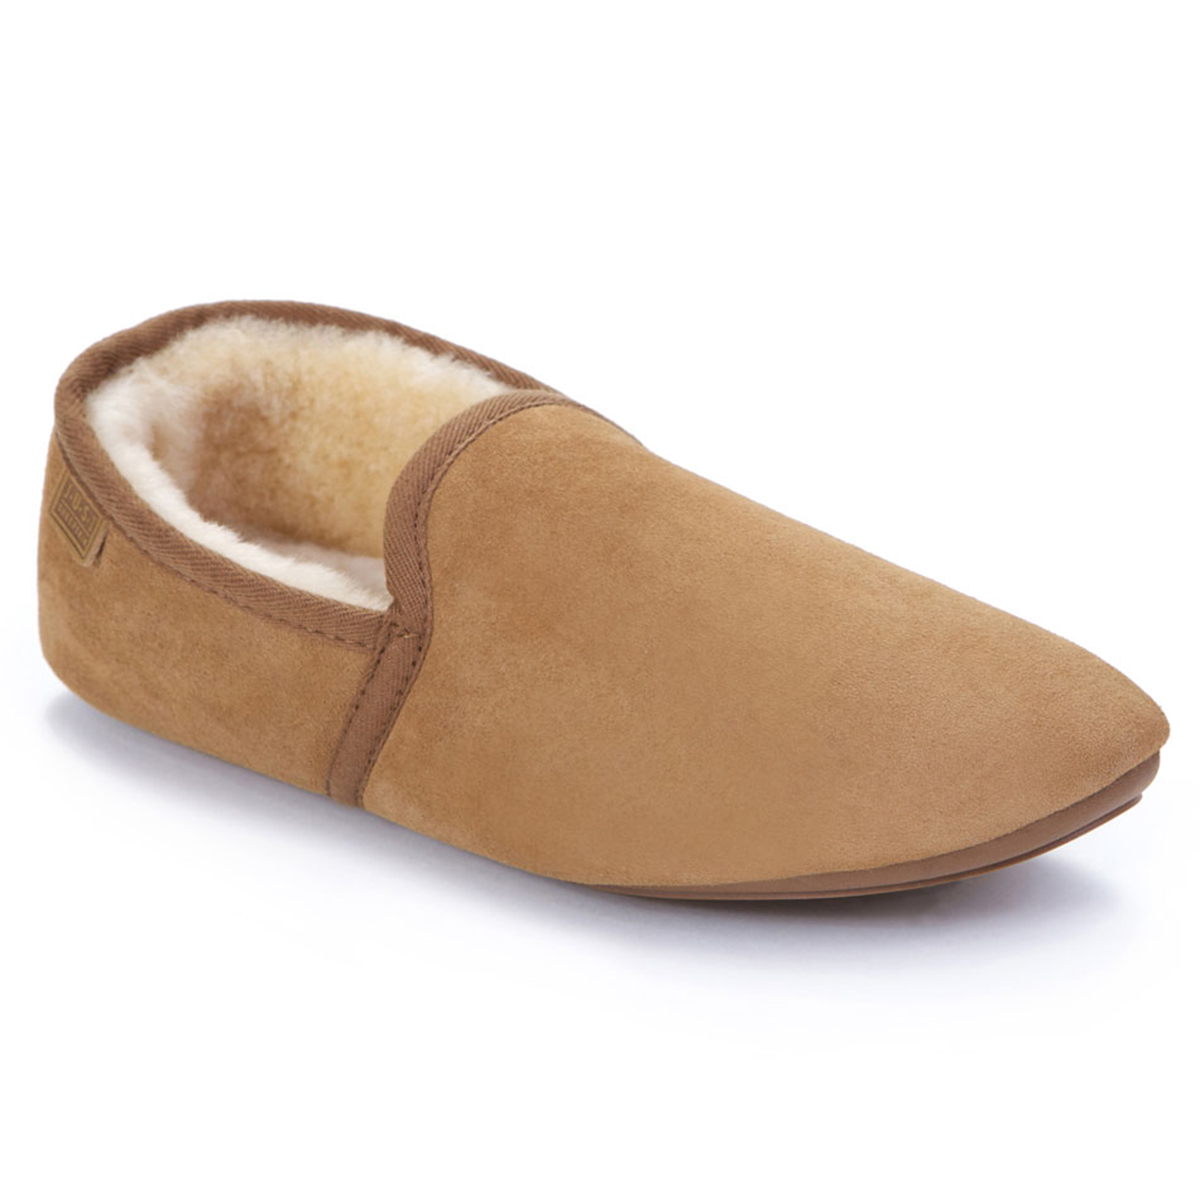 02b30154a35 Mens Garrick Sheepskin Slippers